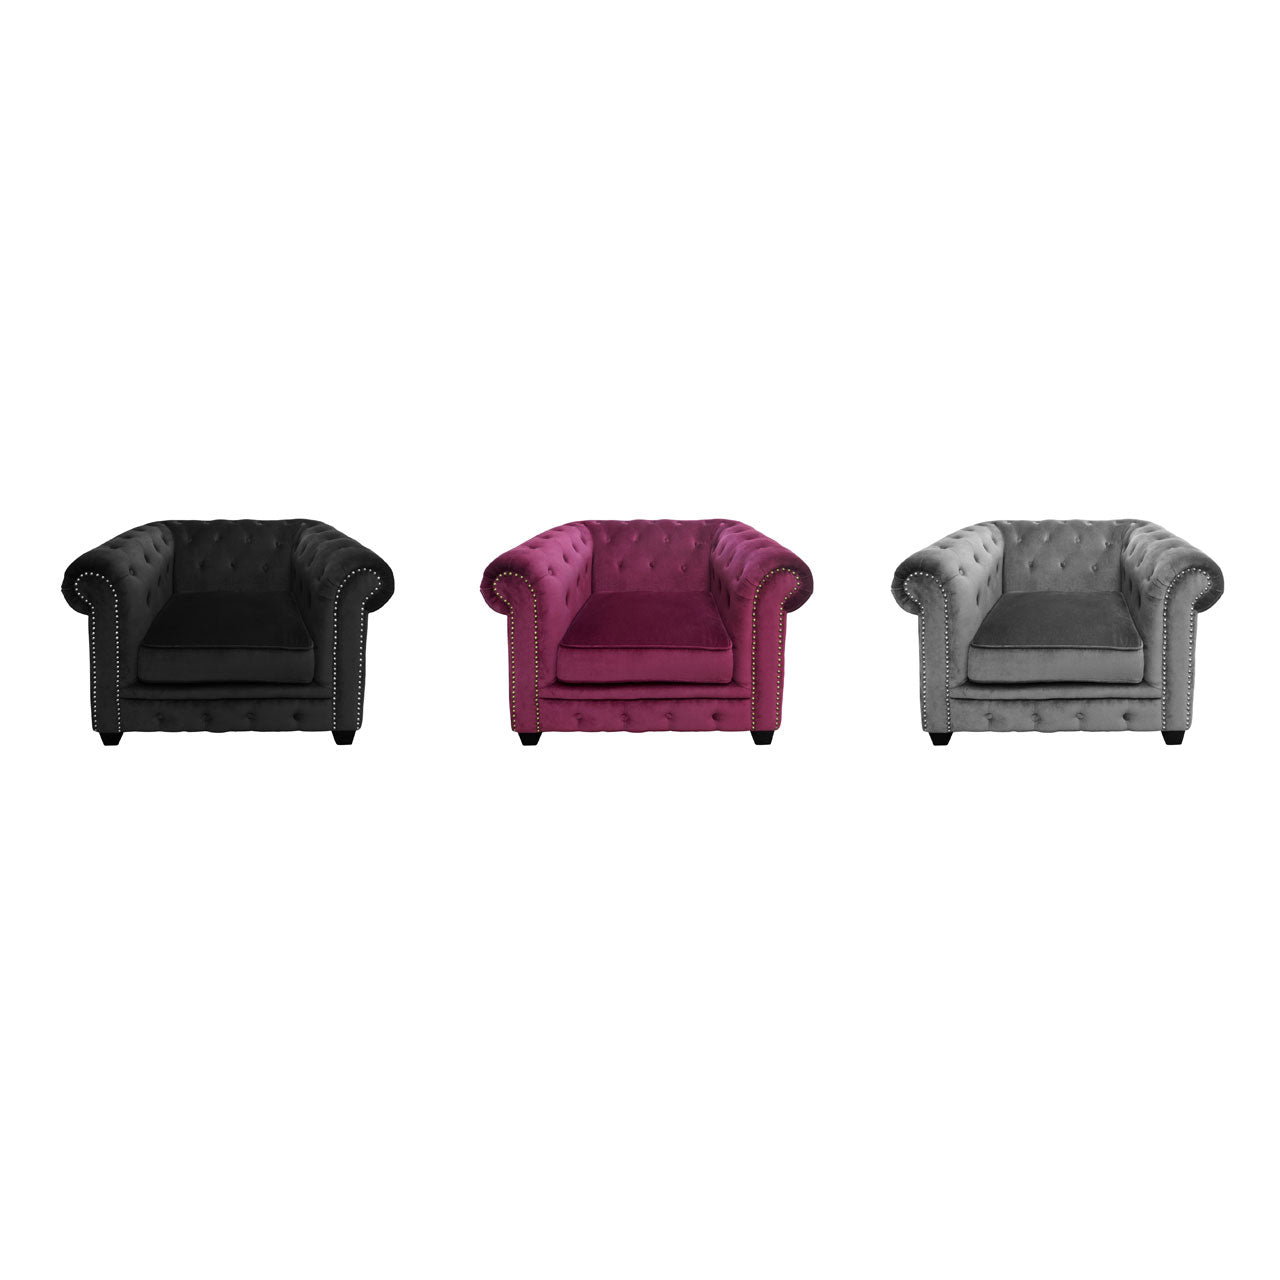 Regents Park Chesterfield Chair in Damson